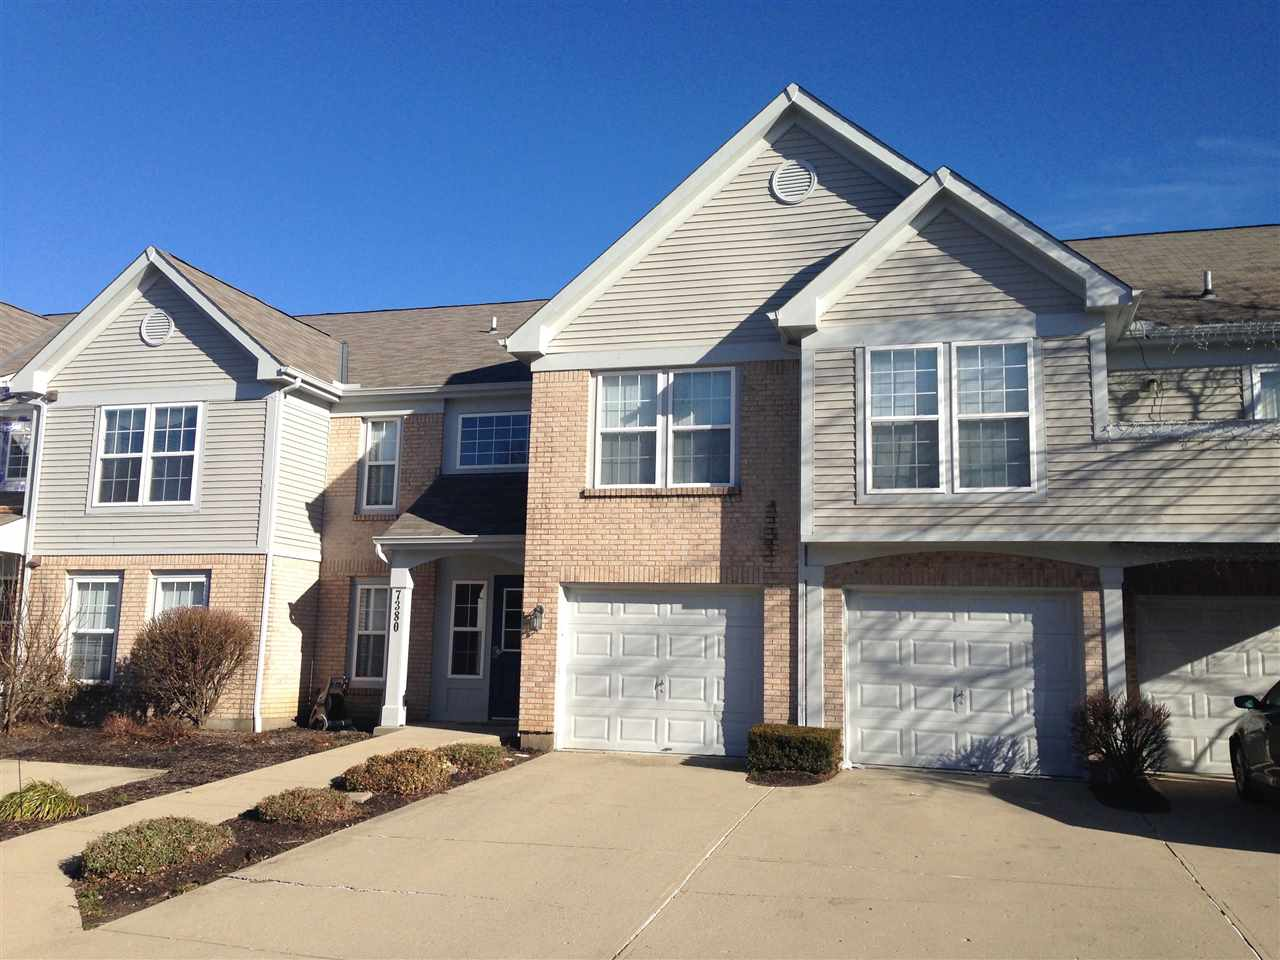 Photo 1 for 7380 Ridge Edge, G Florence, KY 41042